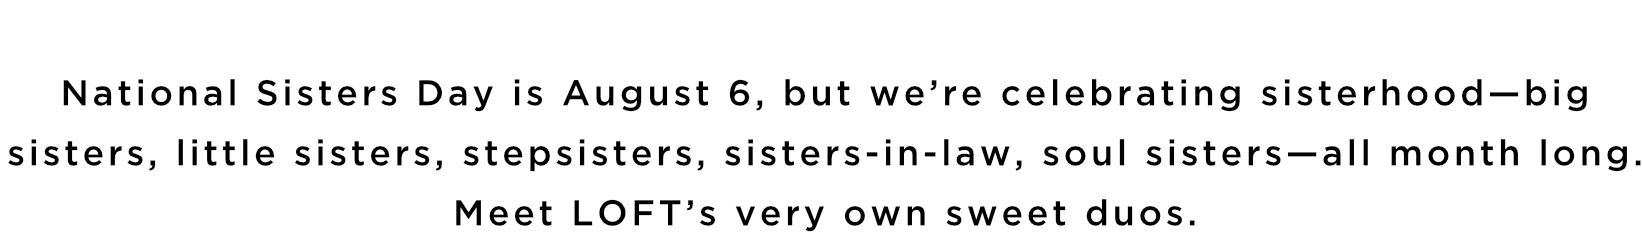 National Sisters Day is August 6